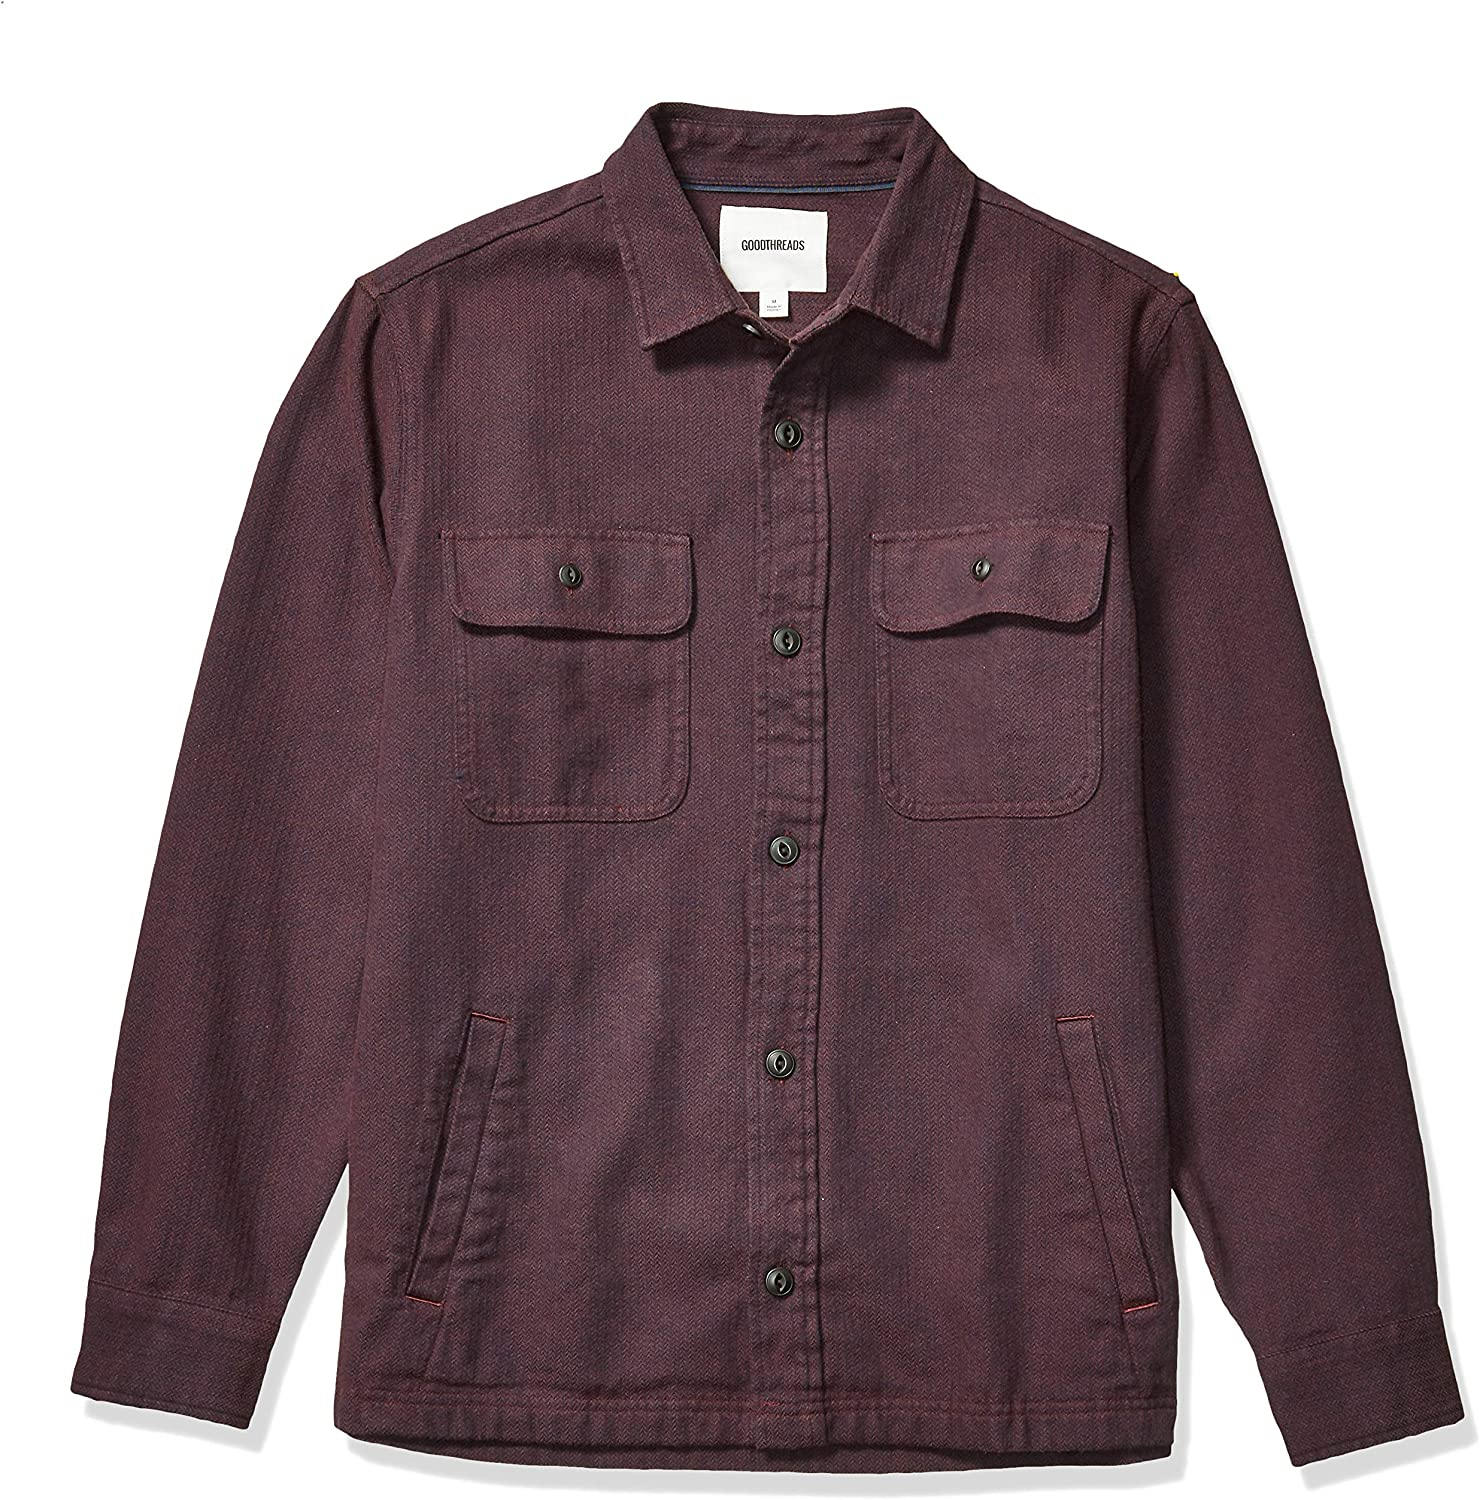 Goodthreads Men's Heavyweight Shirt Jacket Flannel High quality new Today's only